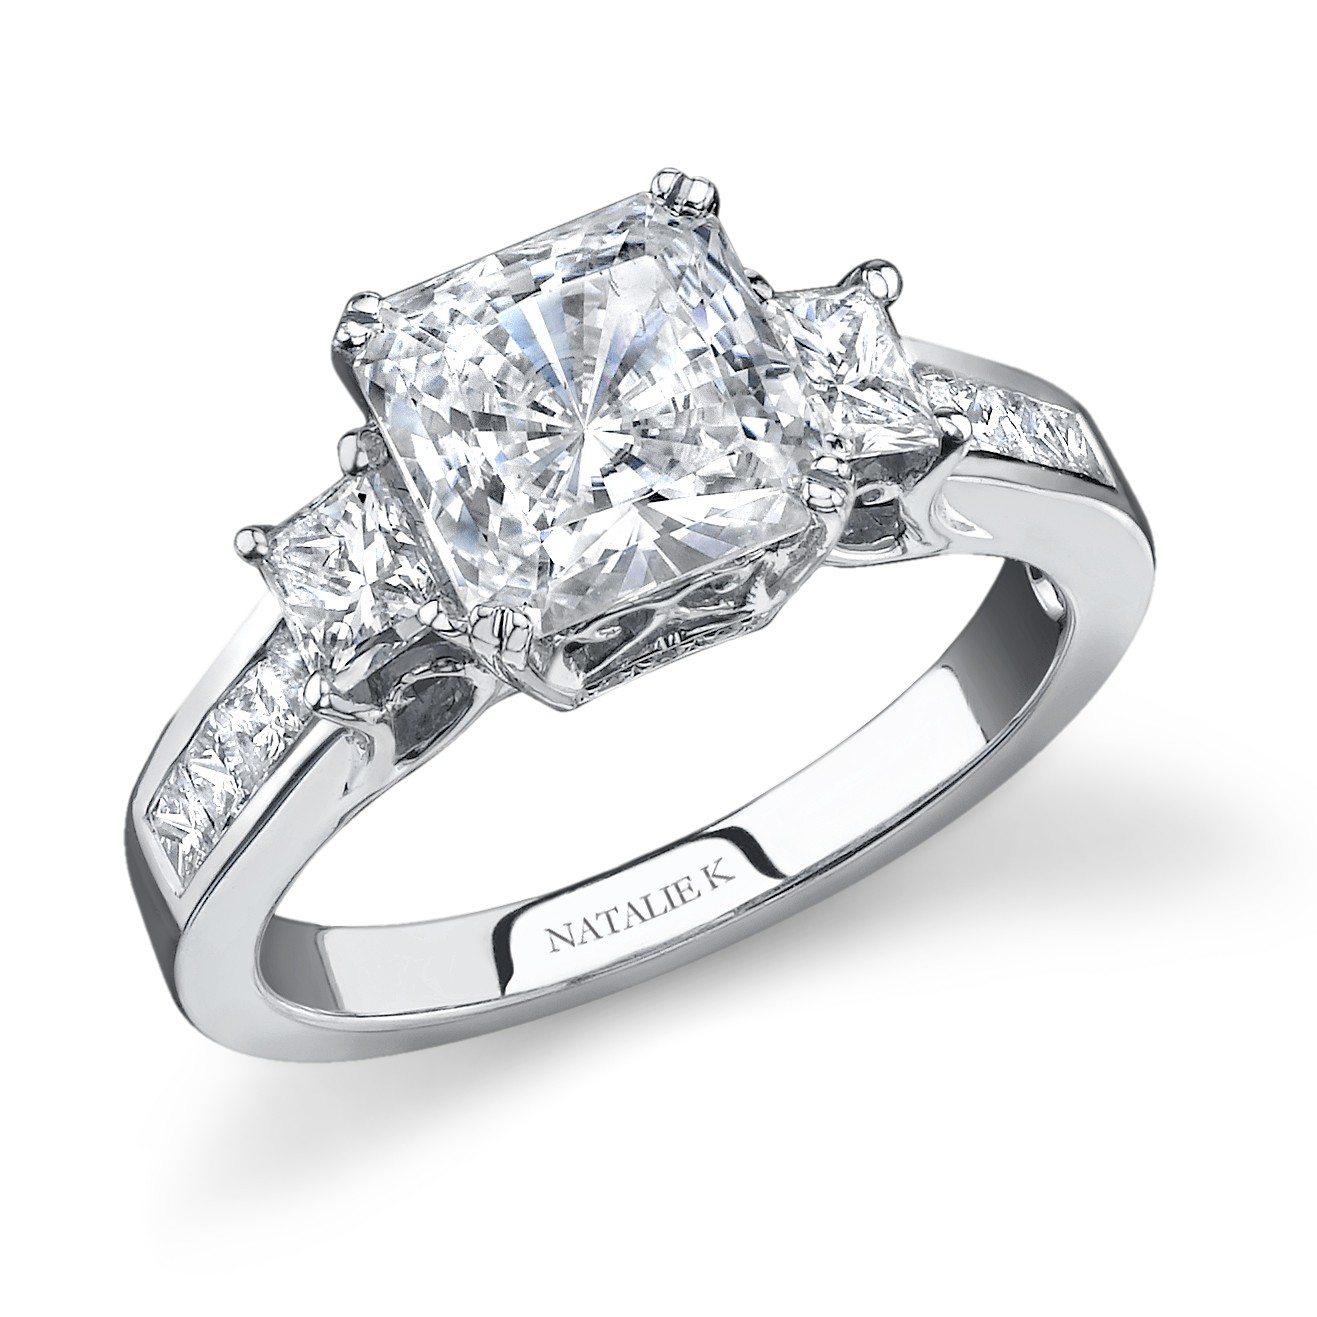 distinguished pin diamond specializing fine k in rings engagement designer a jewelry of natalie brand fashion is